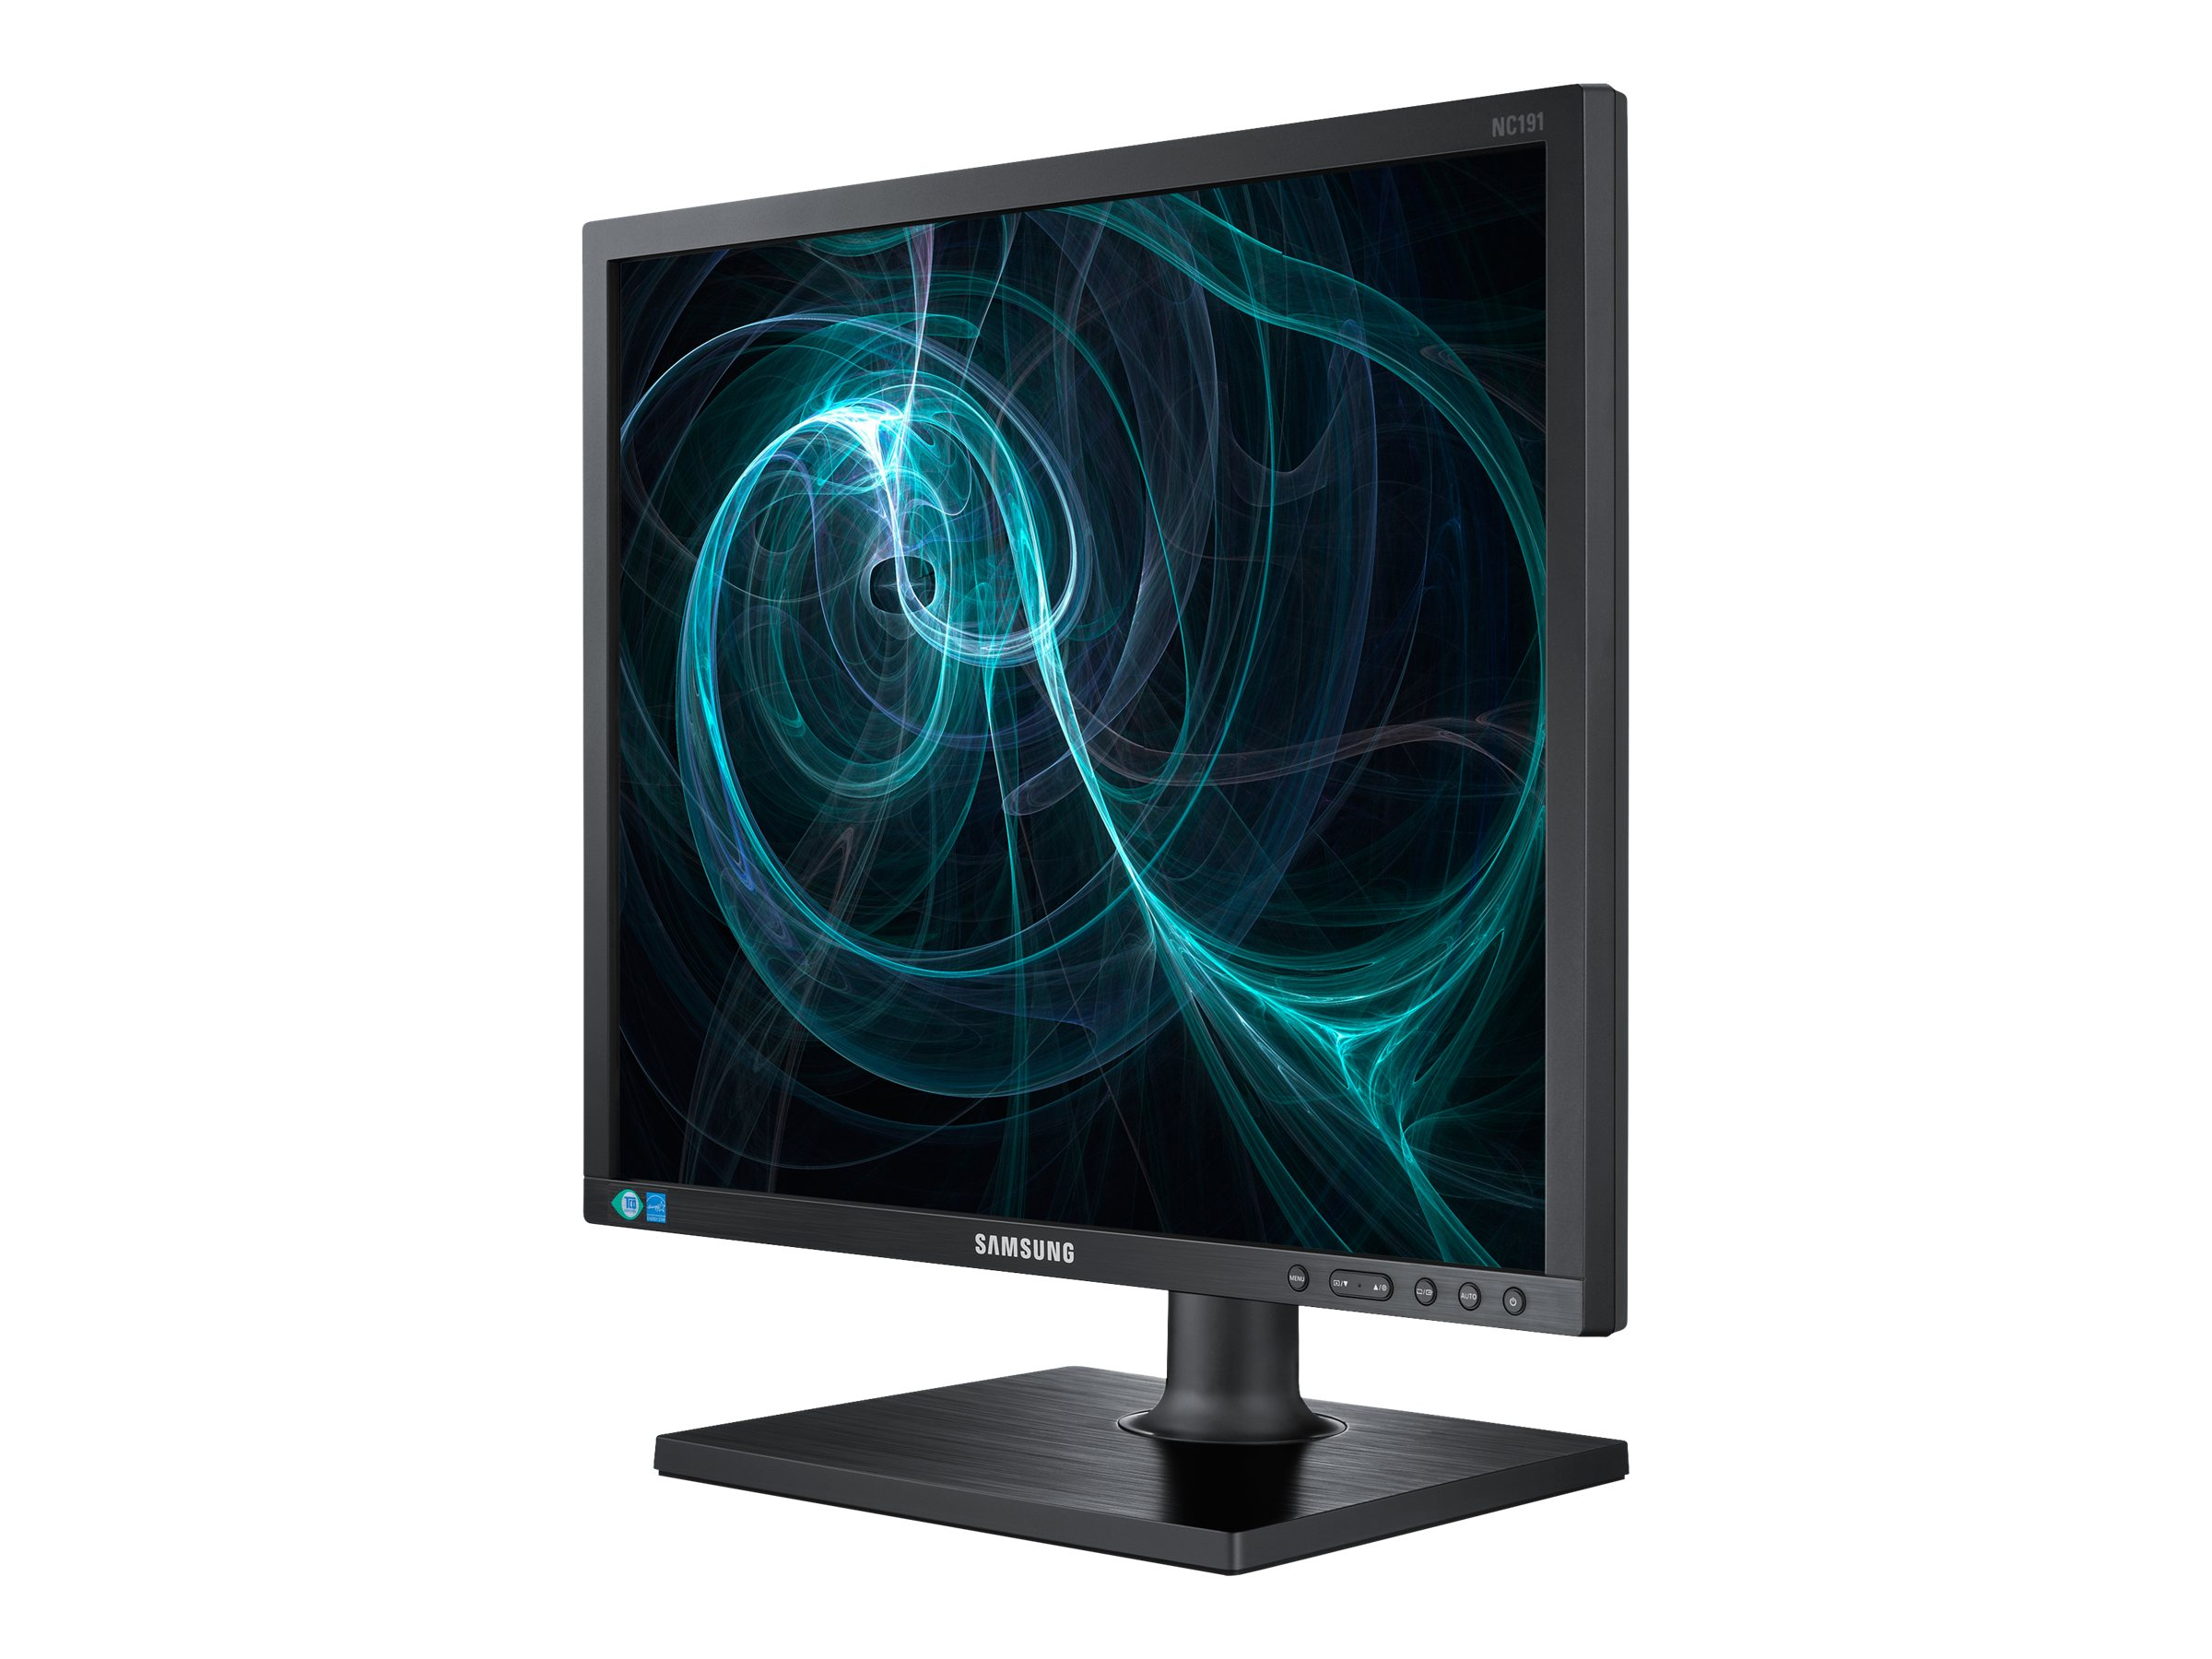 Samsung 19 NC191 Zero Client LED-LCD Monitor, Black, NC191, 15570065, Thin Client Hardware